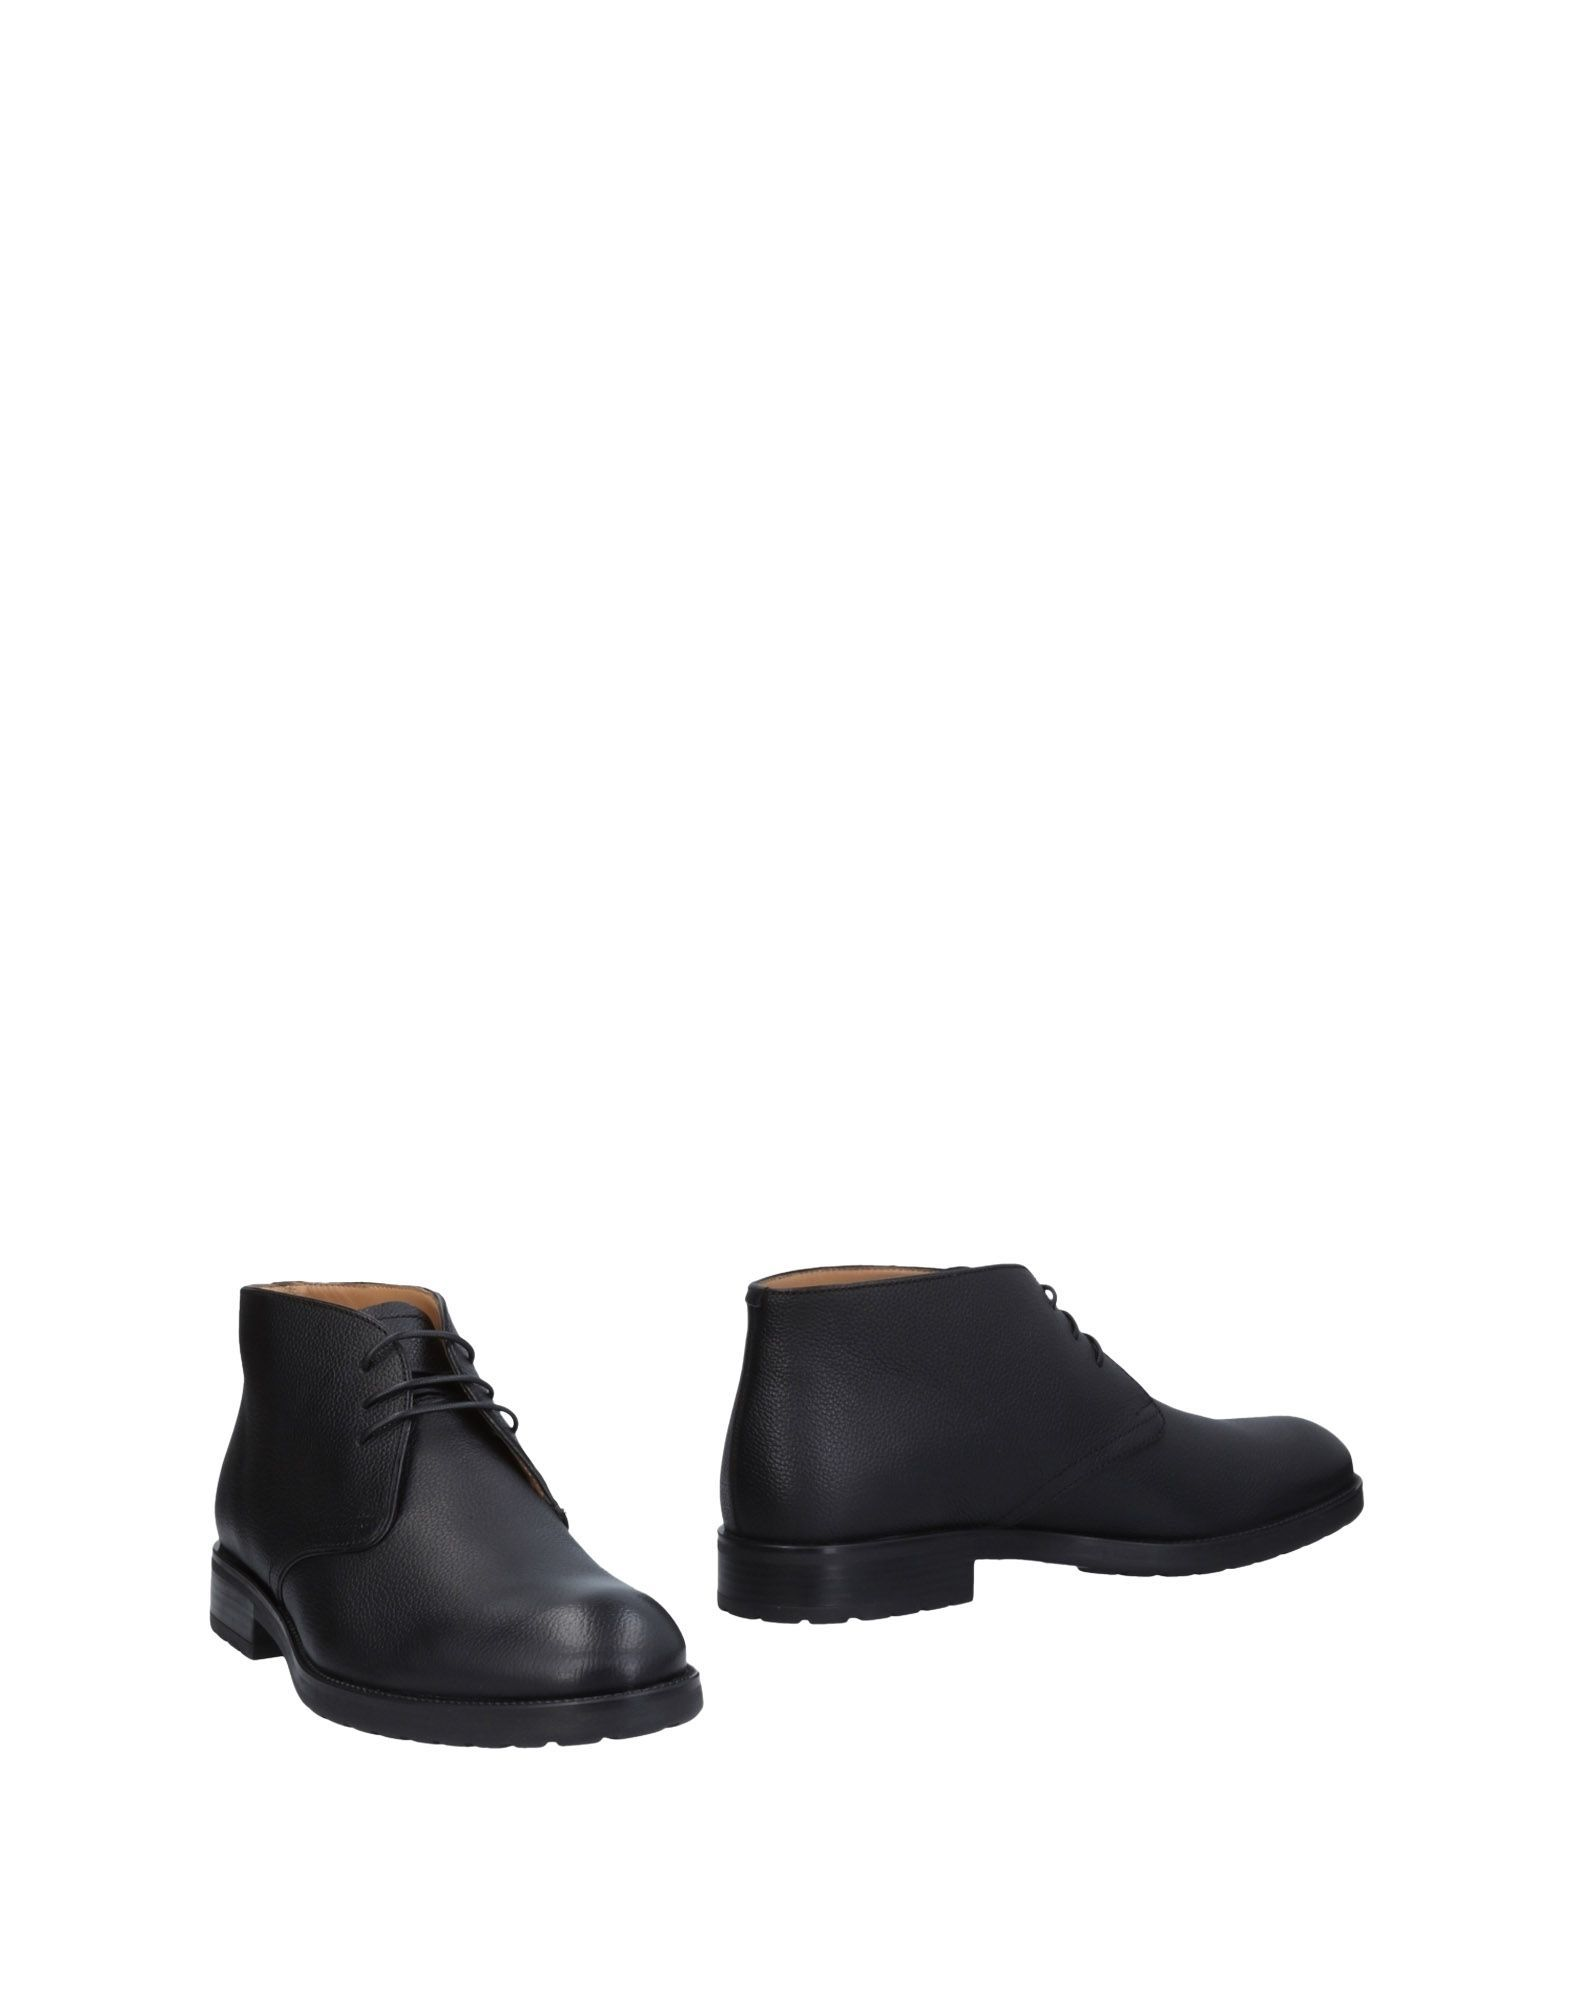 Bally Black Textured Leather Boots